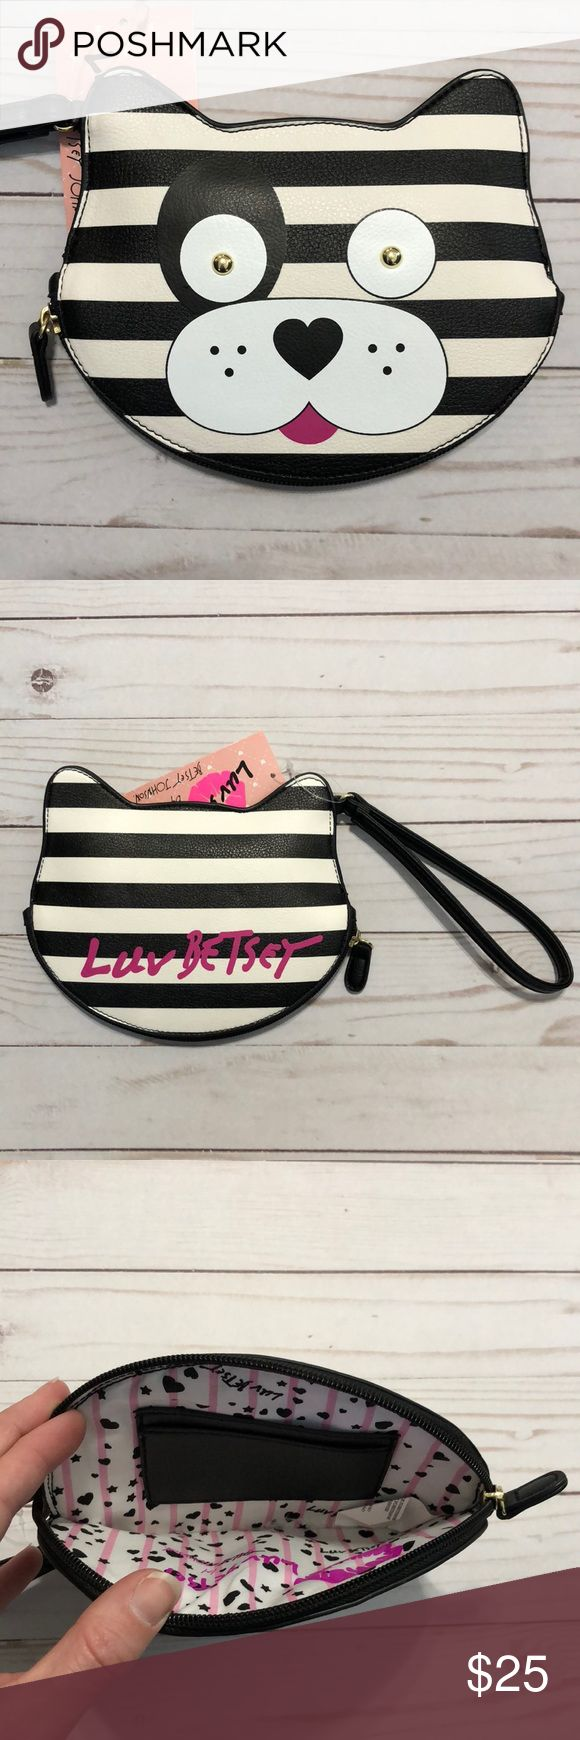 Betsey Johnson Coin Purse Adorable black and white striped dog face coin purse/wristlet. Gold eyes and a little pink tongue! Zipper closure with credit card/id slots on inside! So cute!! Betsey Johnson Bags Clutches & Wristlets